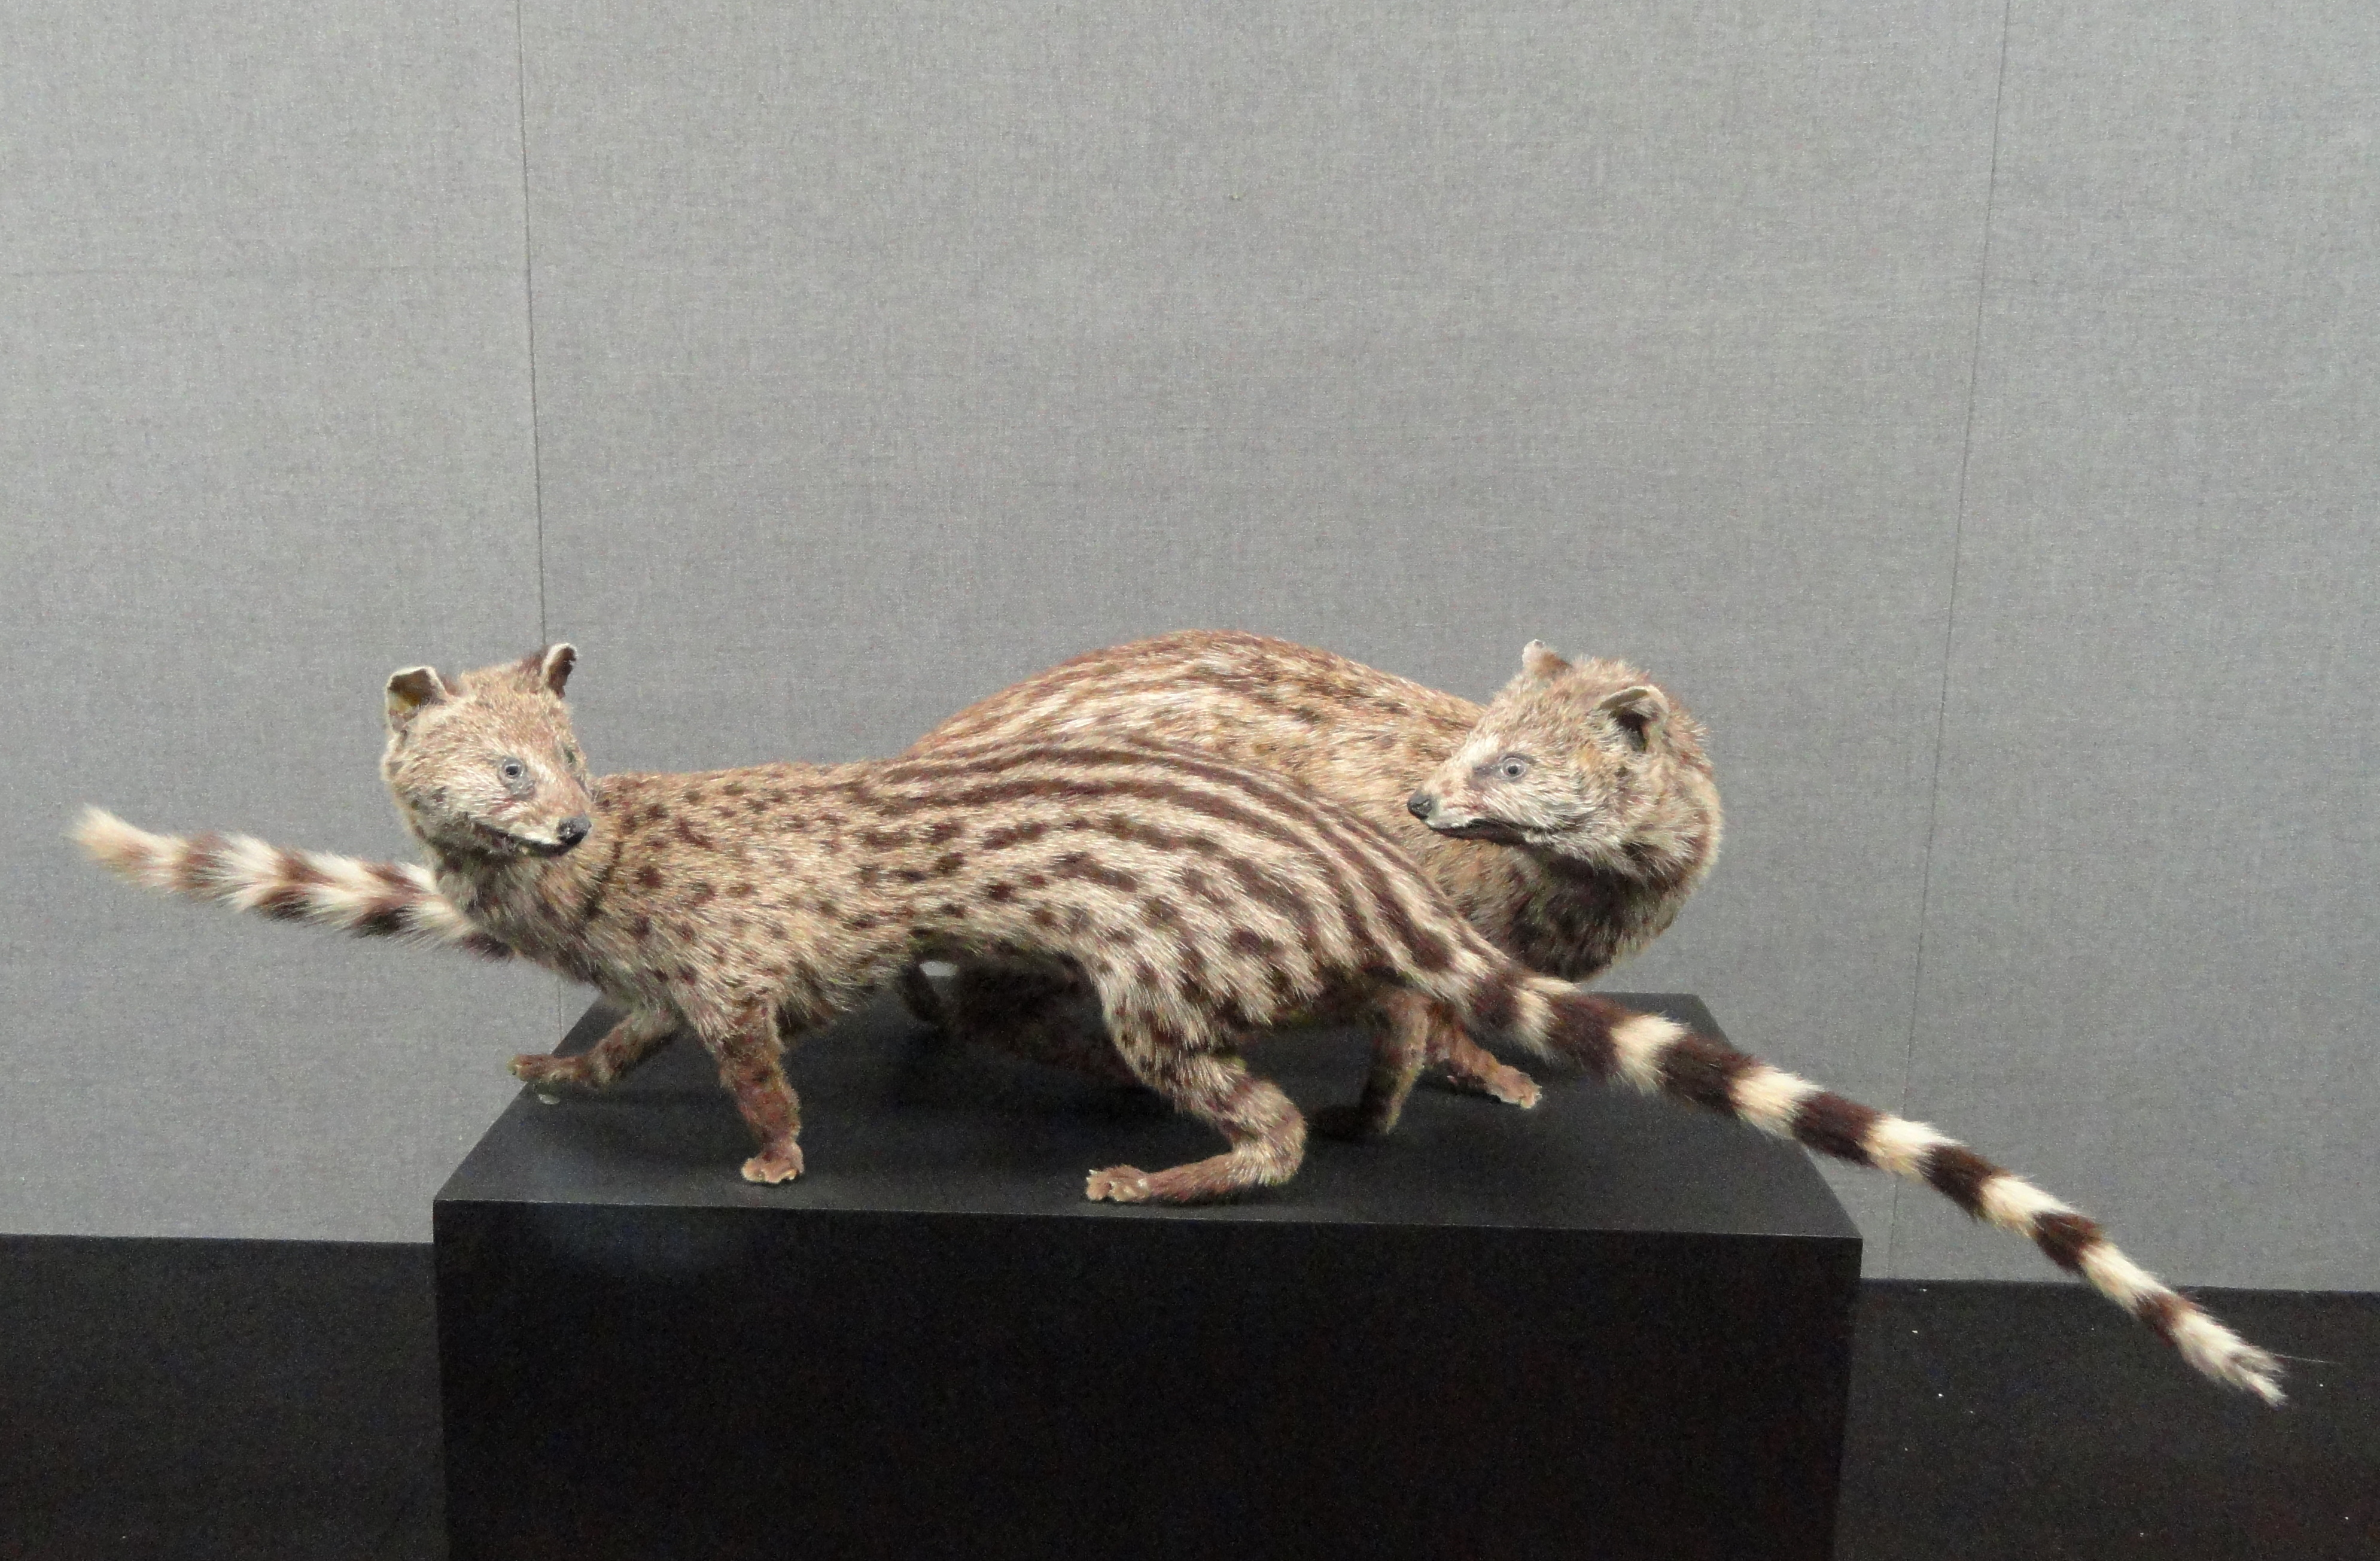 Image of Small Indian civet